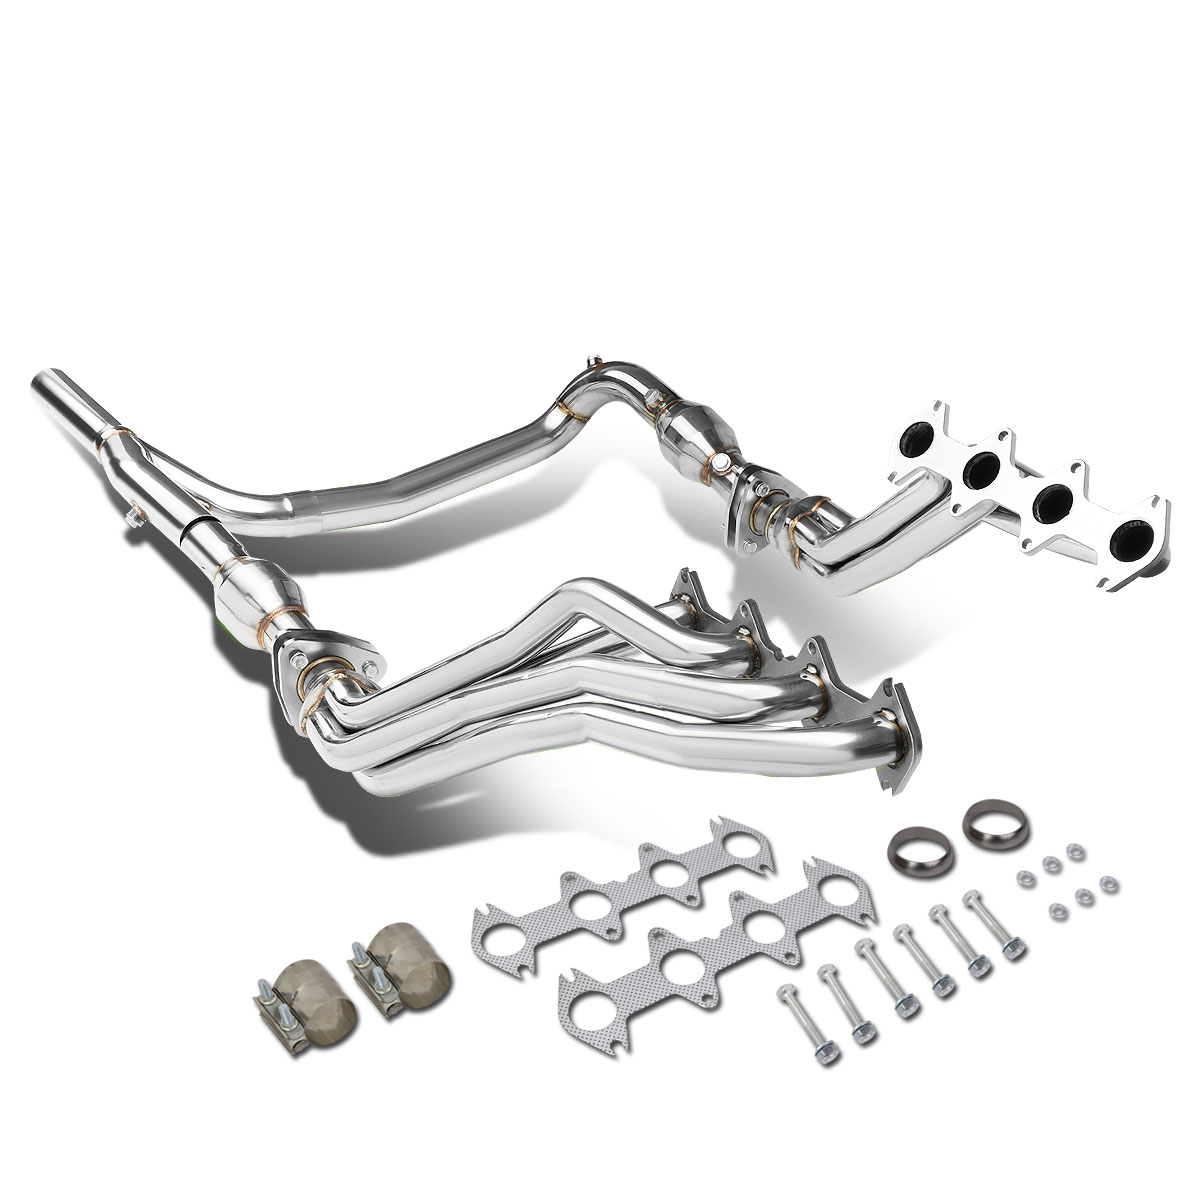 for 2004 to 2010 ford f150 5 4l v8 4wd long tube 4 2 1 exhaust header manifolds gaskets y pipe 05 06 07 08 09 walmart com